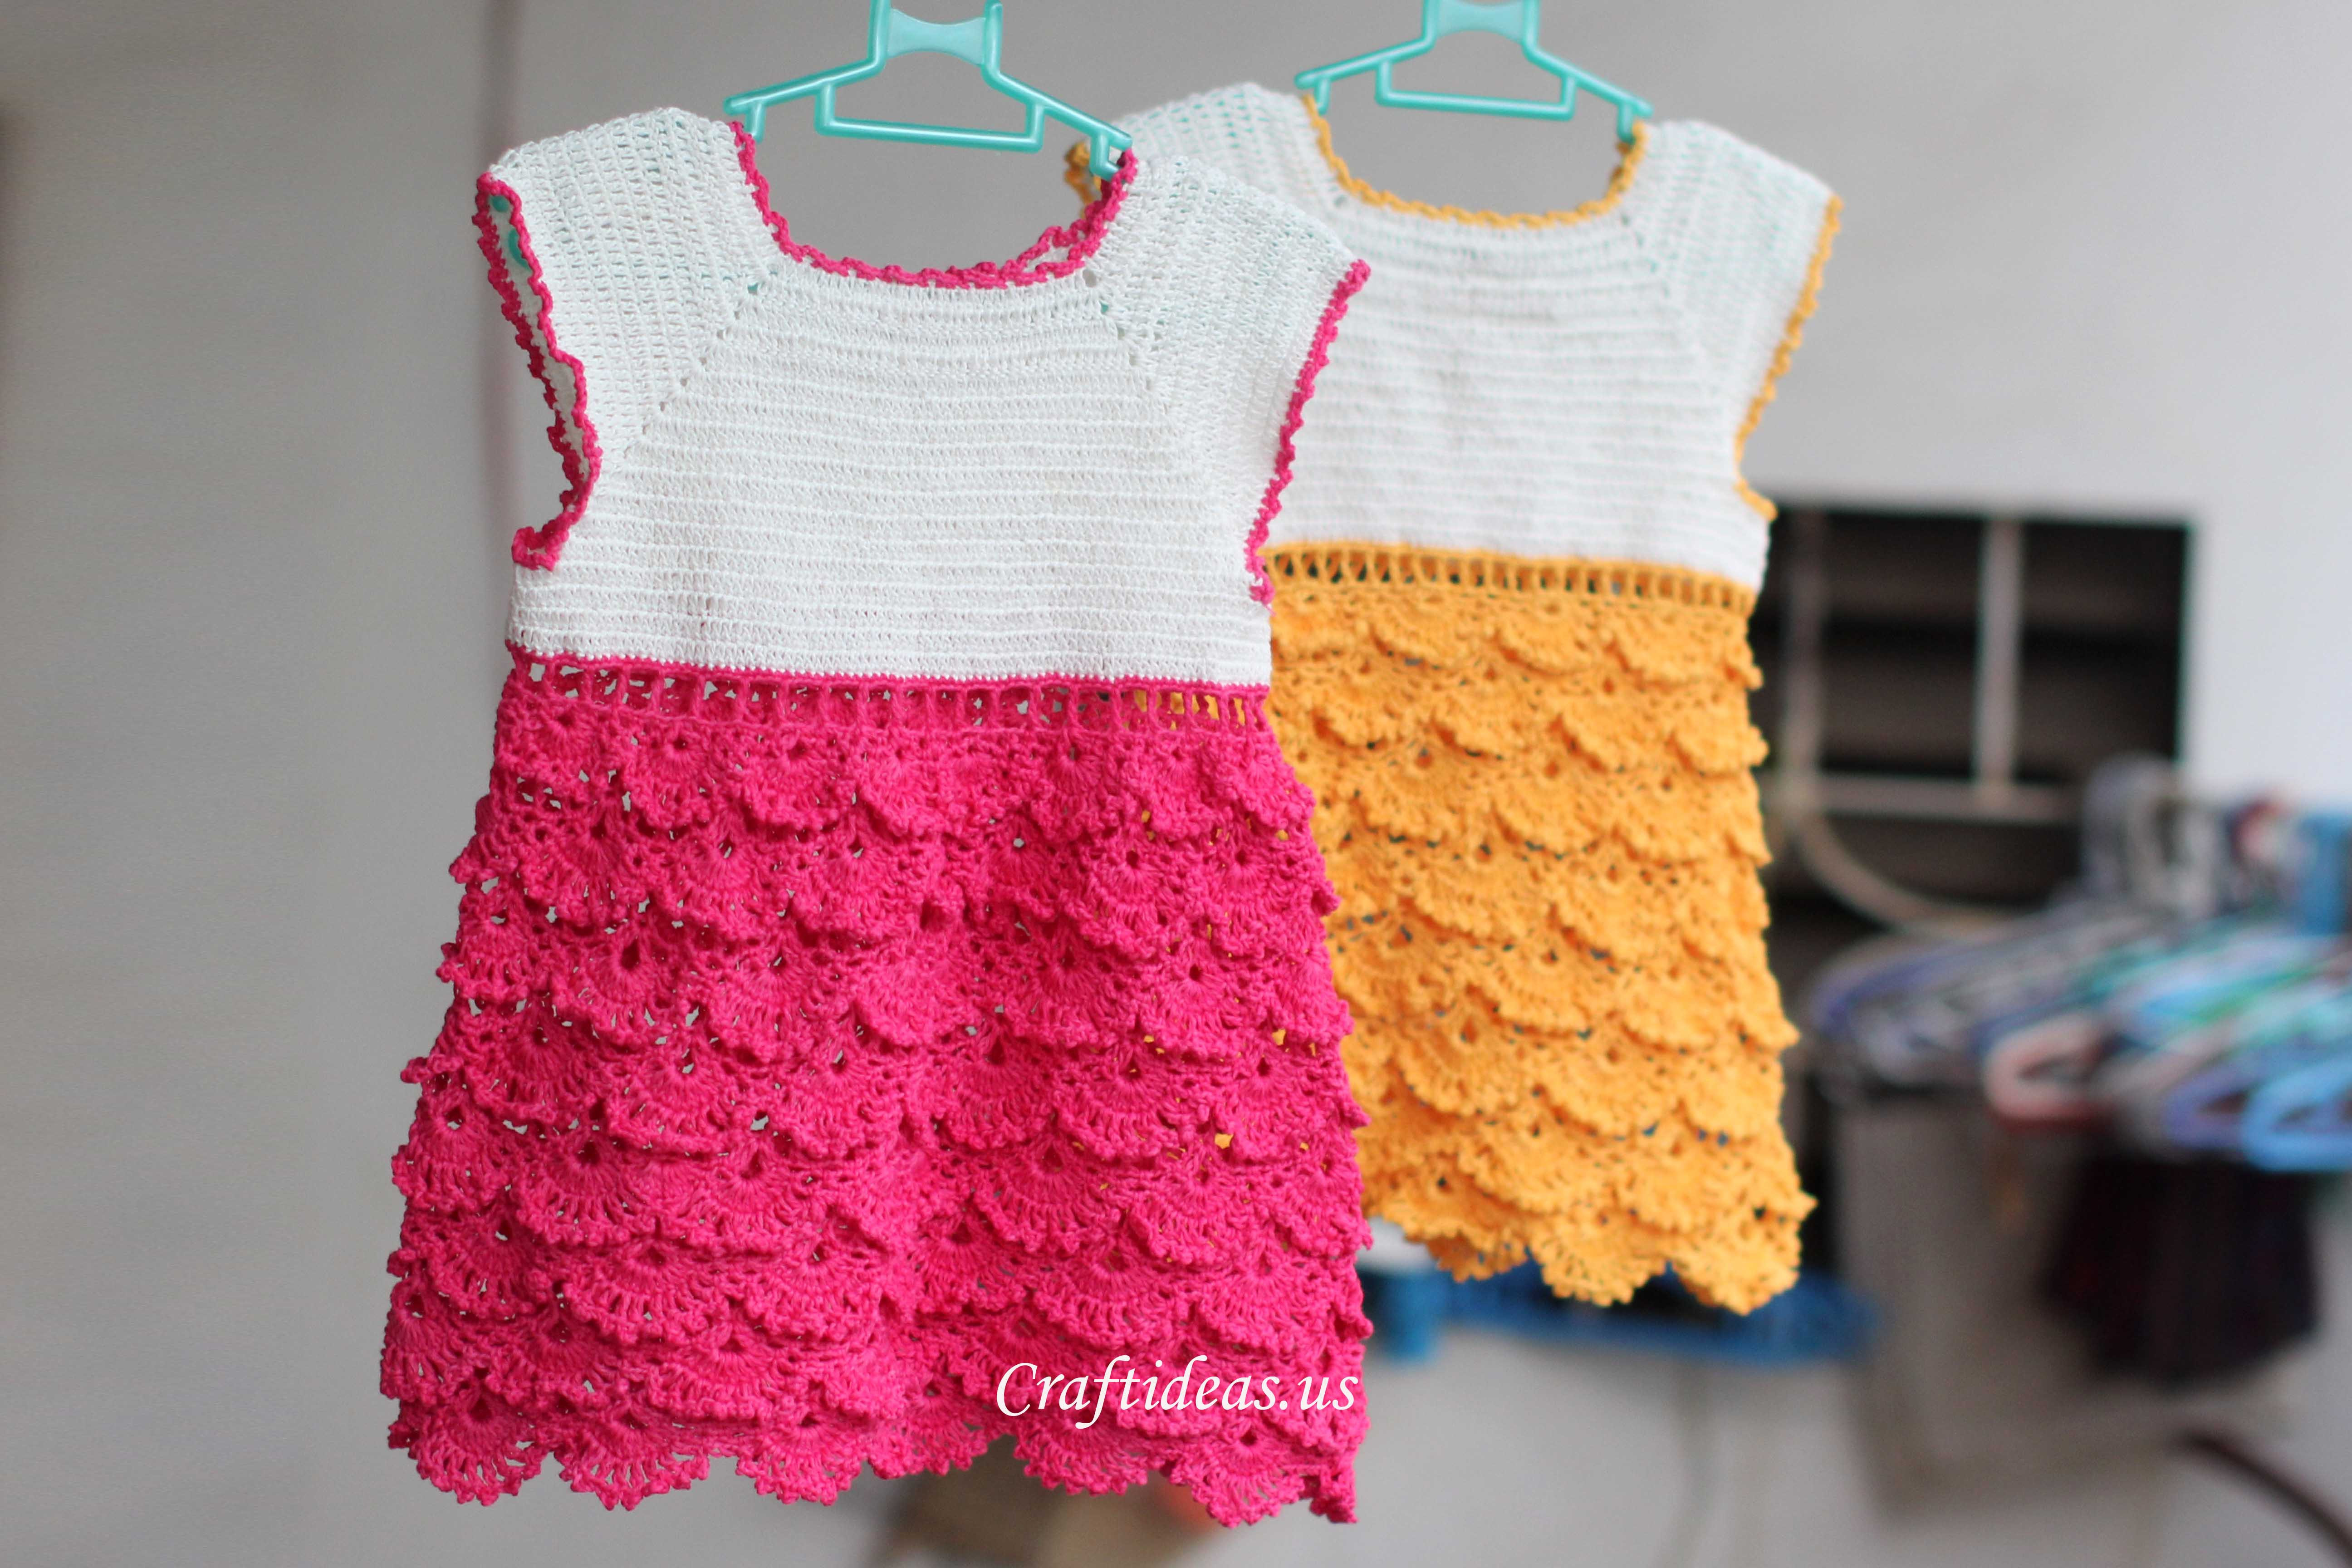 Lovely Crochet Charming Dress for Little Girls Craft Ideas Crochet Dress for Baby Of Amazing 42 Photos Crochet Dress for Baby